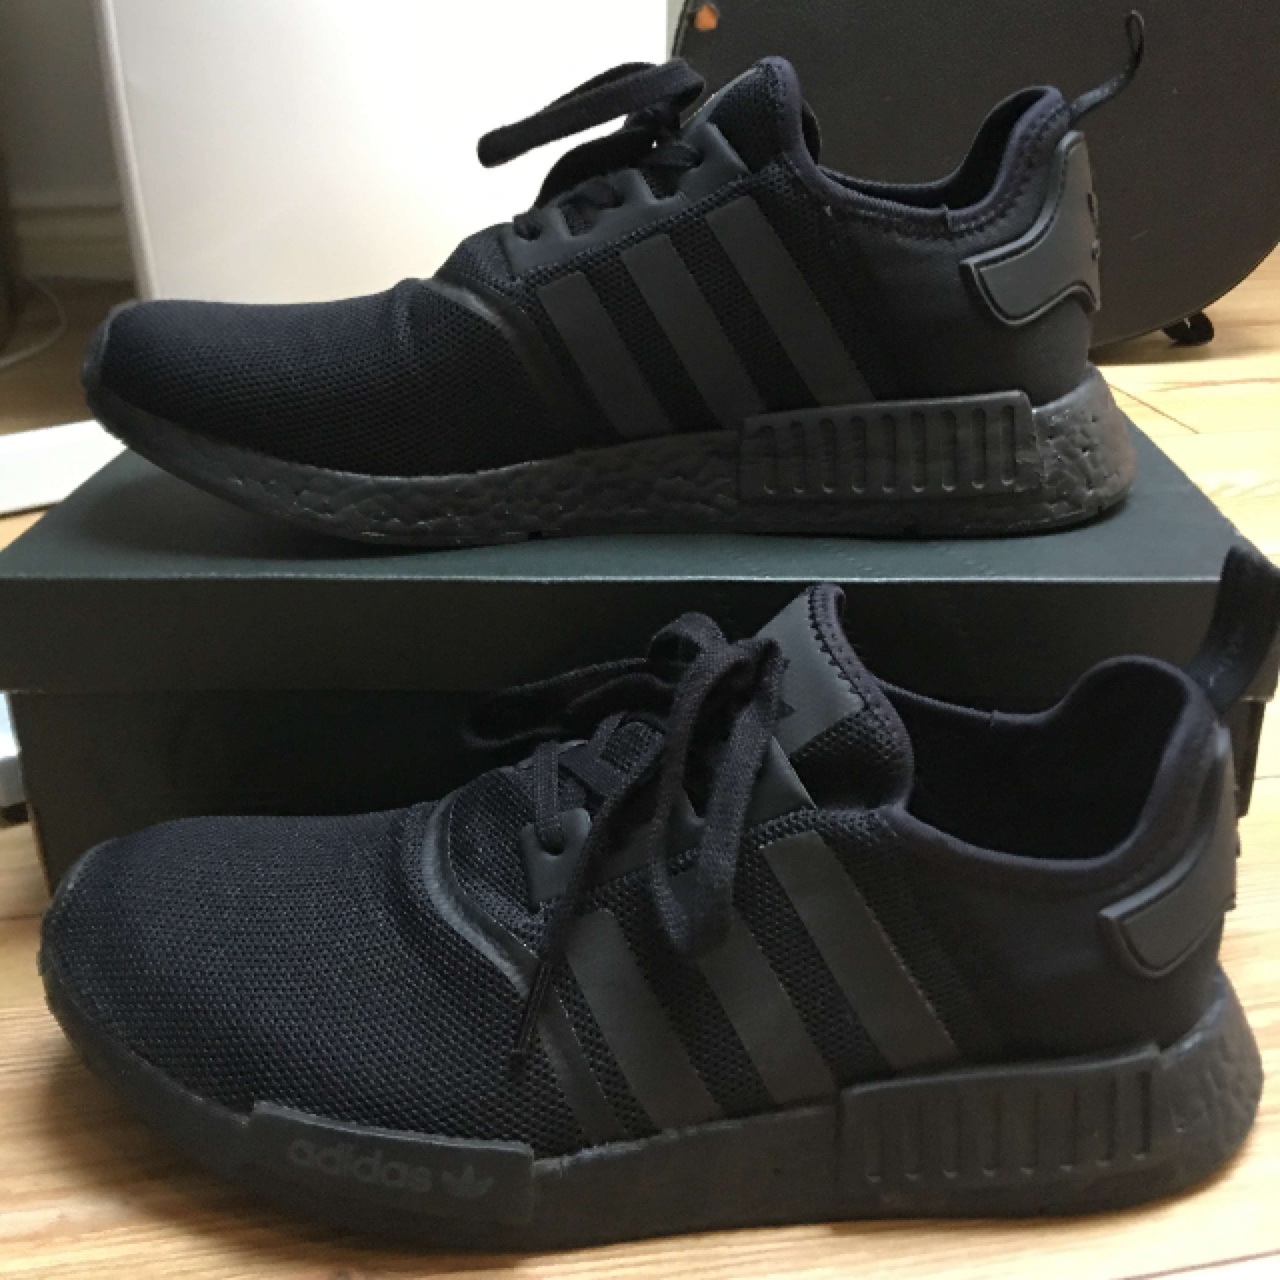 Brand new Adidas NMD Triple black. Bought from the Depop